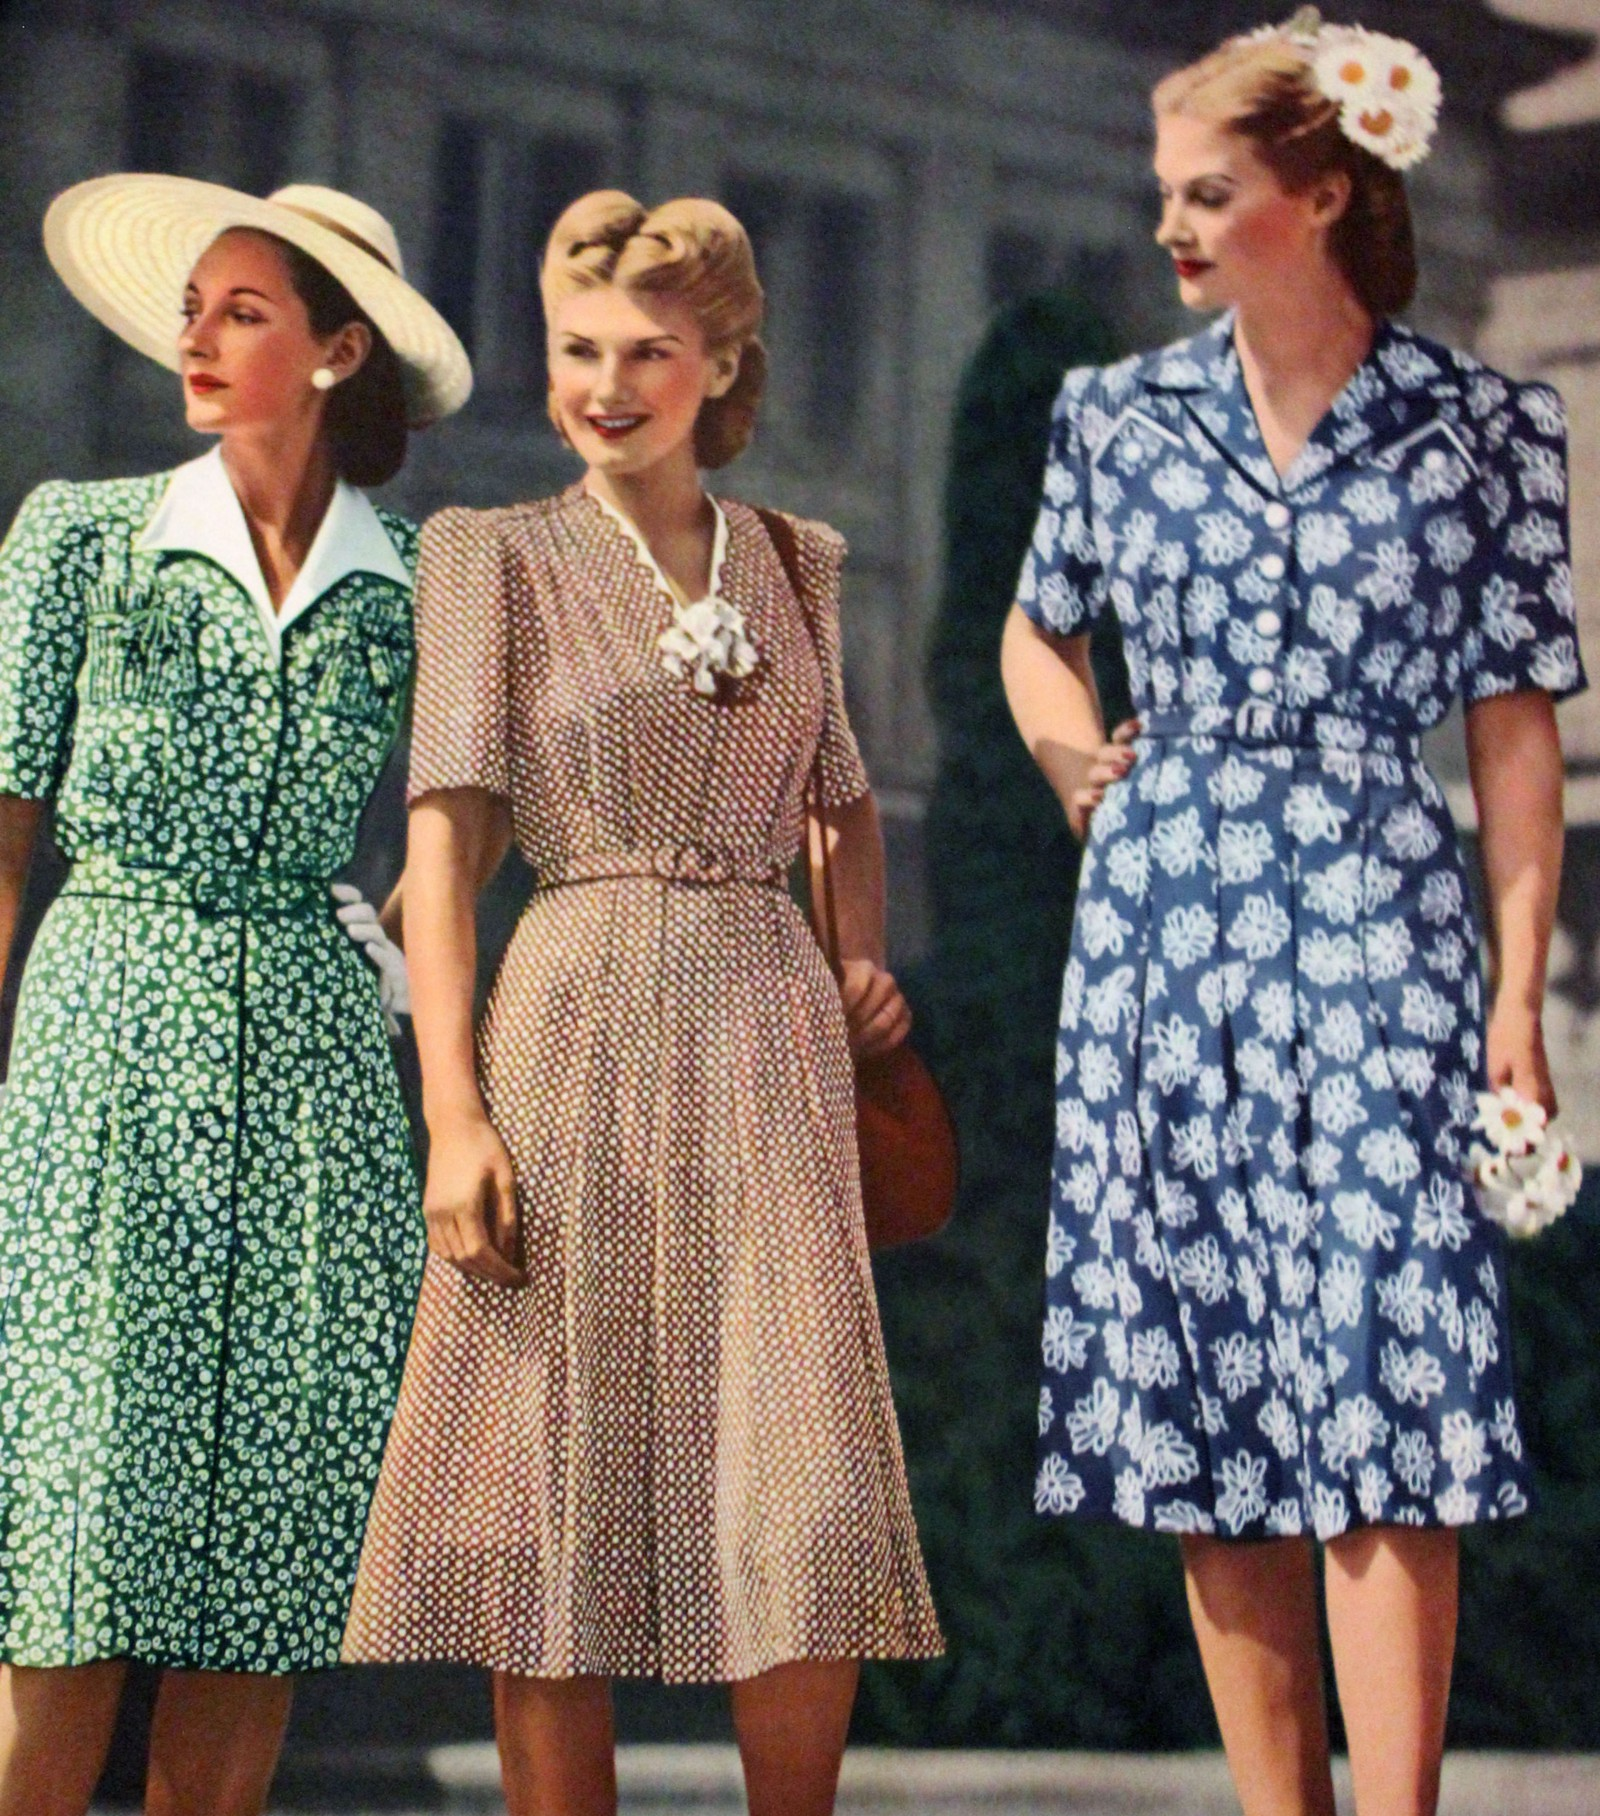 fbc44fb5585 Neither Short Nor Long Sleeves — Dresses in the early 40 s had sleeves that  ended just above the elbow or mid forearm. Except for the Kitty Foyle style  ...